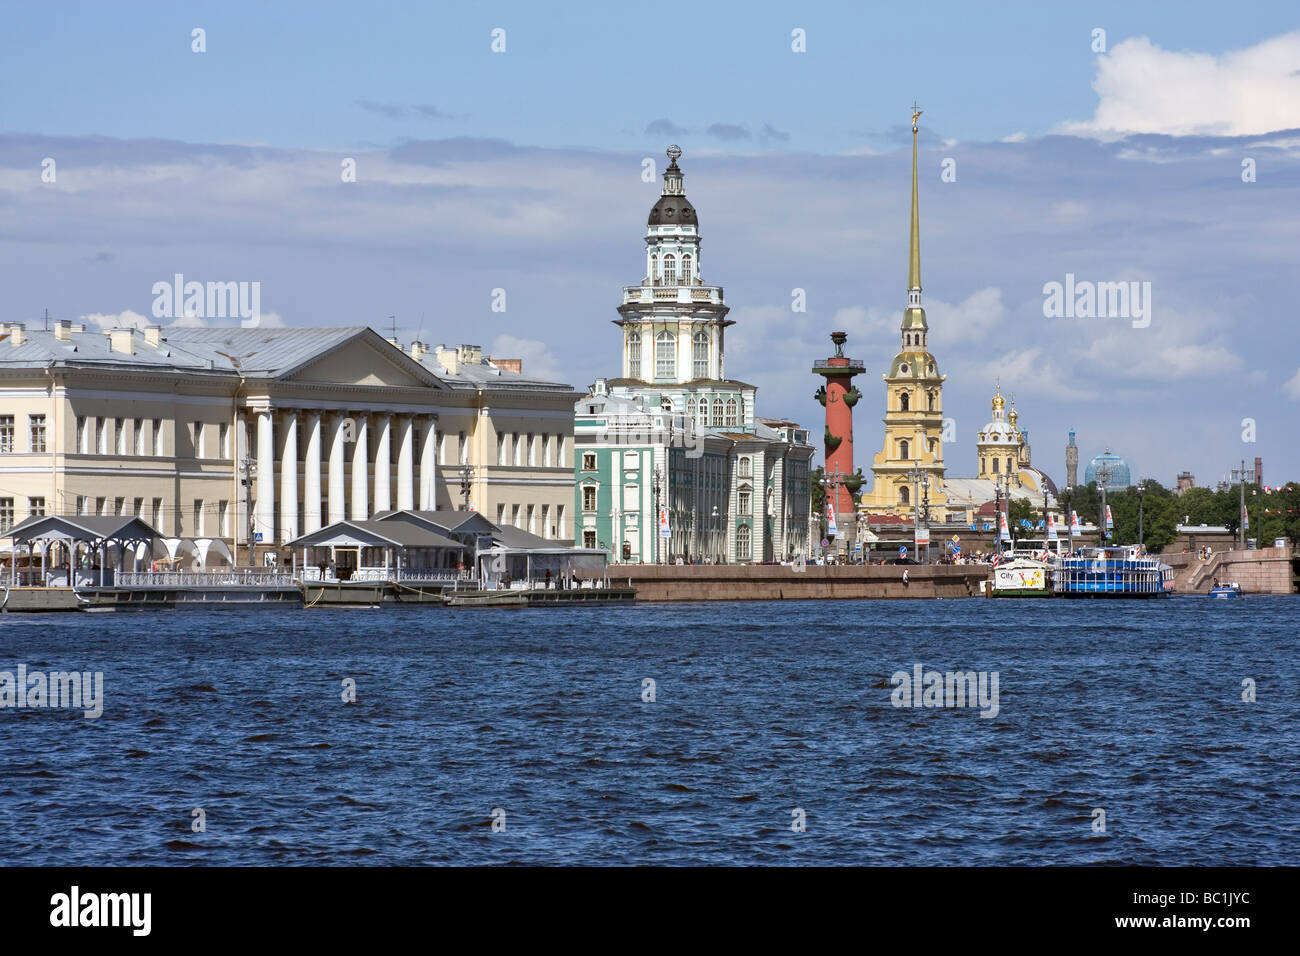 St Petersburg Russia View of Vassilievsky island with Kunstkamera and St Peter and Paul Fortress - Stock Image